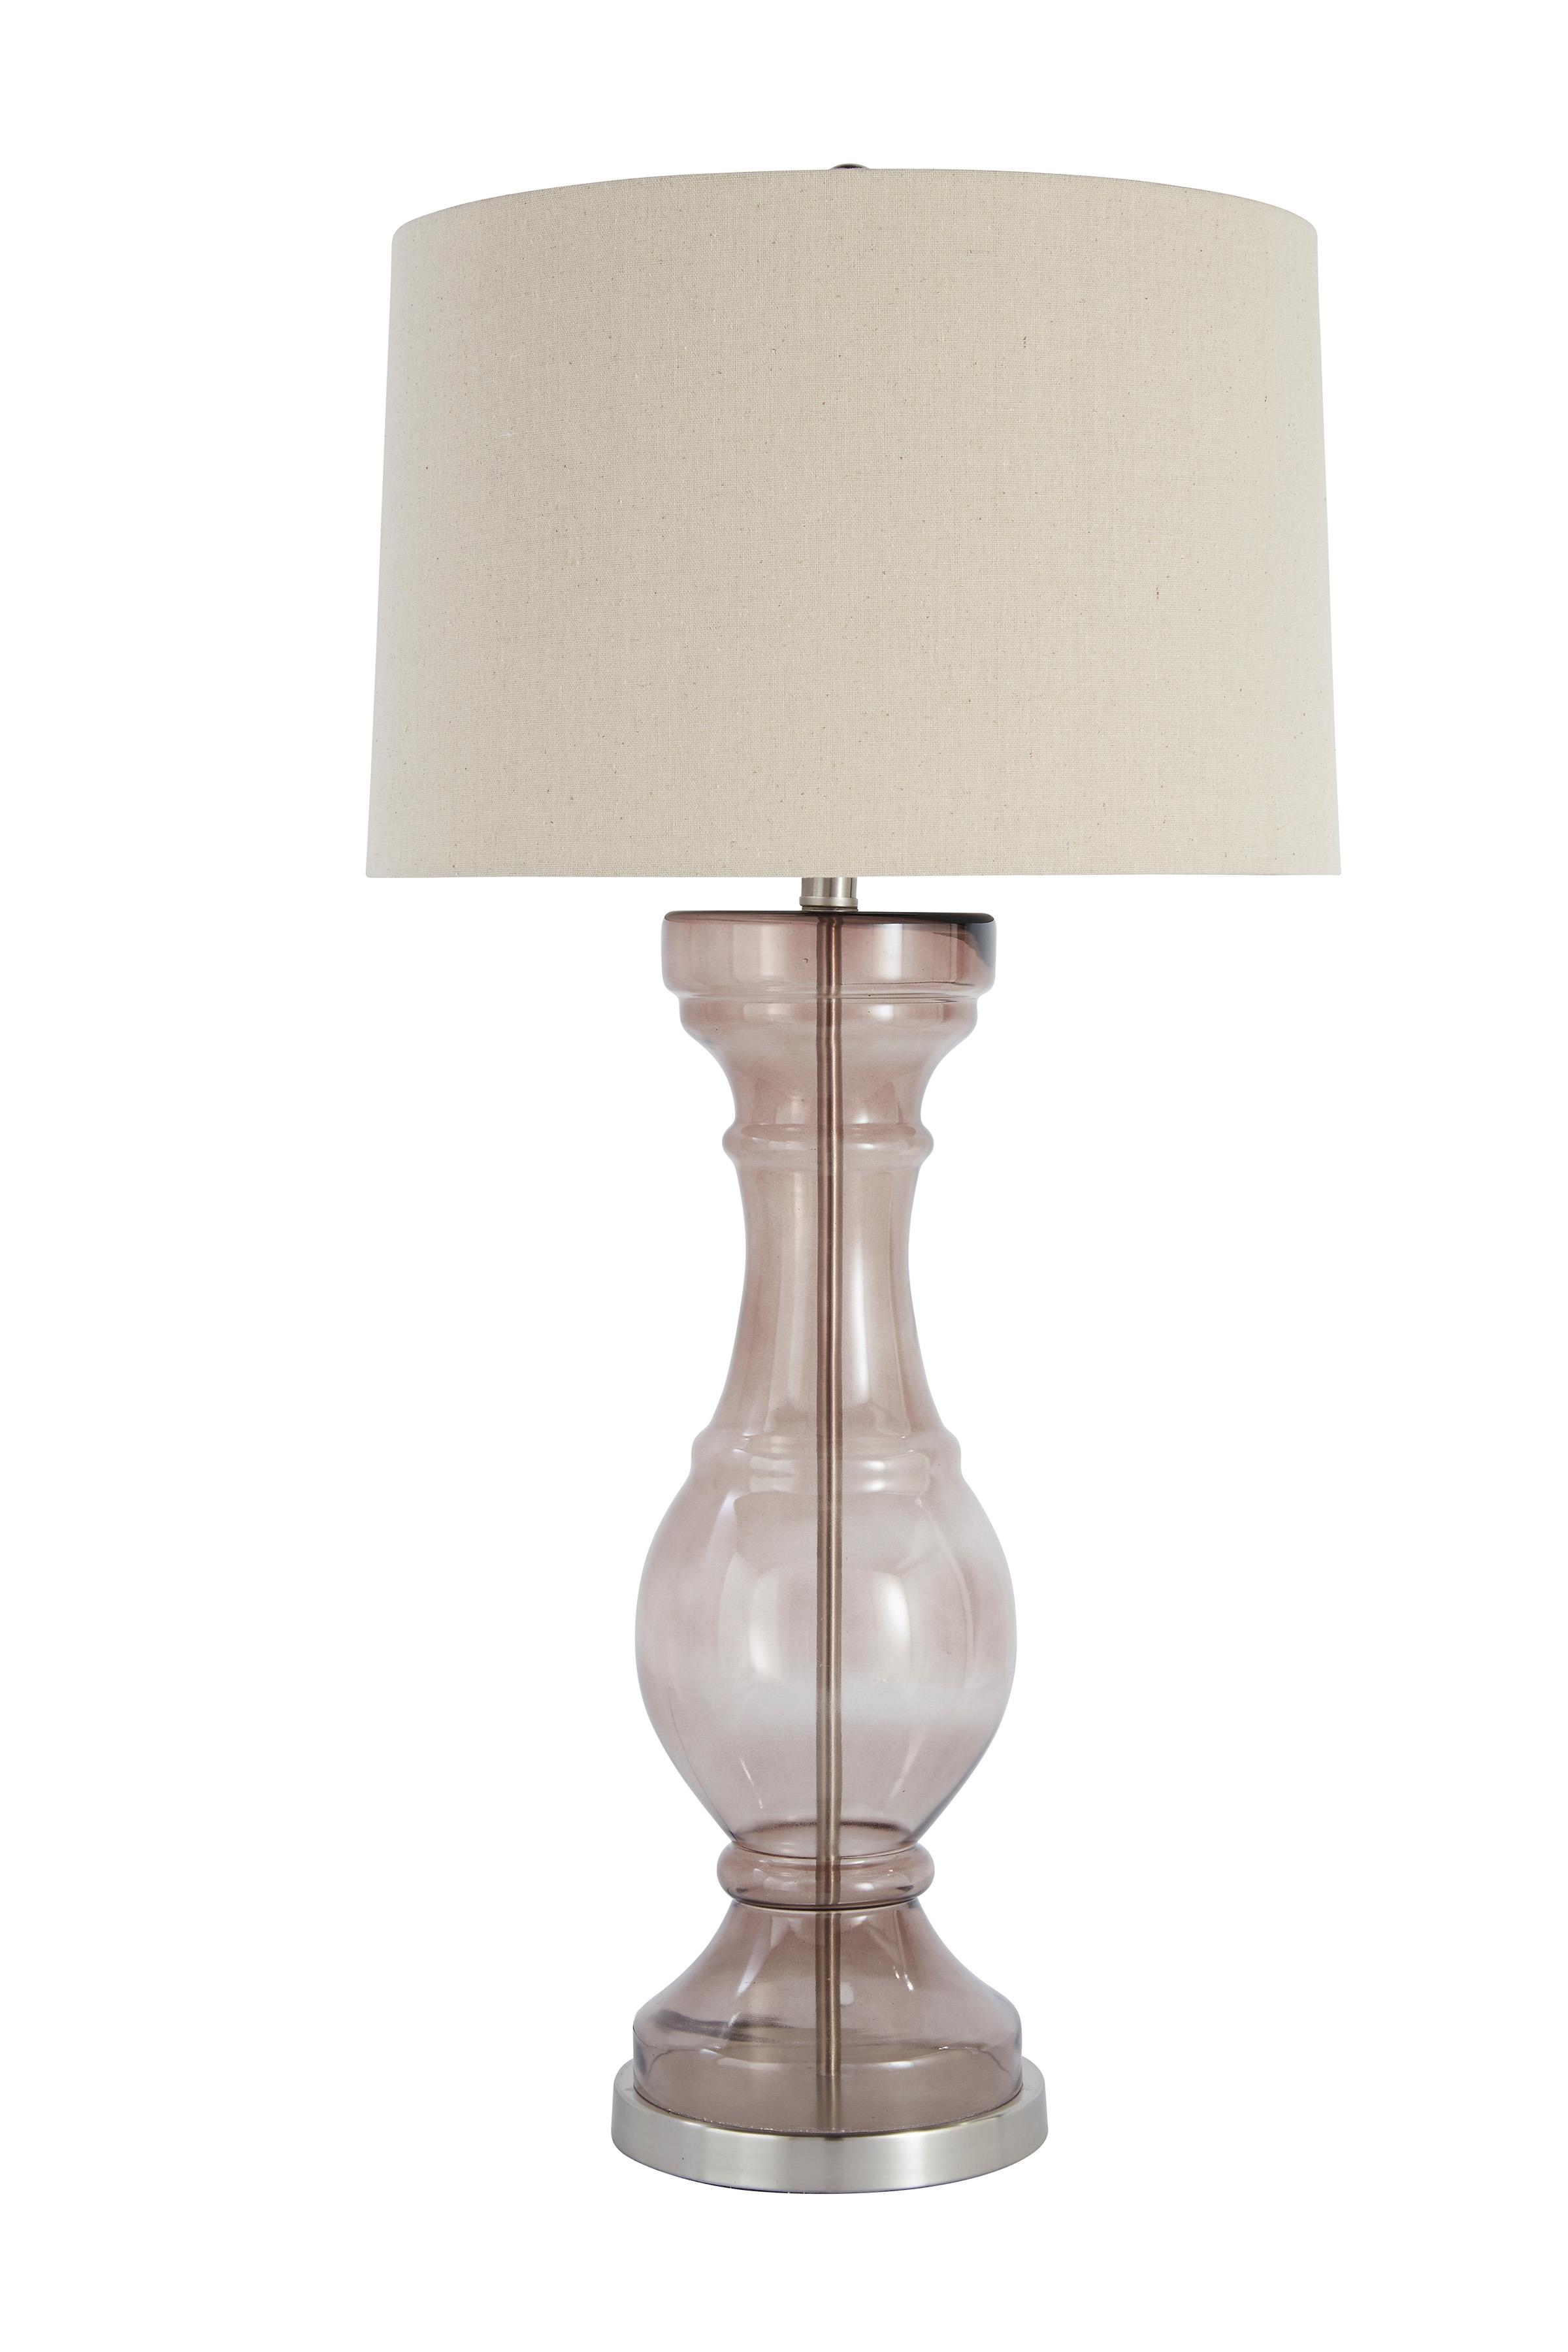 Signature Design by Ashley Lamps - Contemporary Glass Table Lamp  - Item Number: L430024